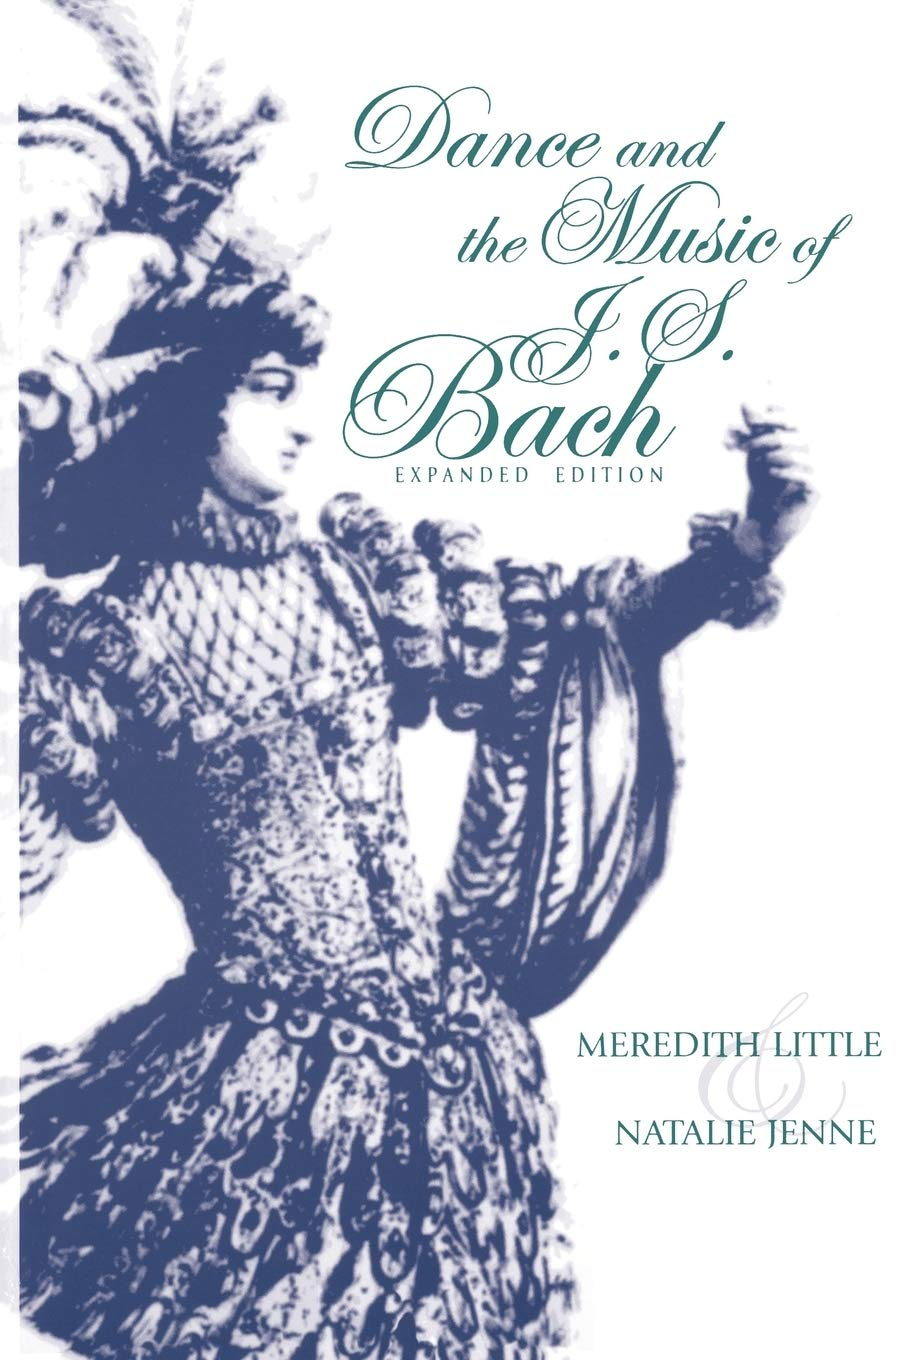 Dance And The Music Of J S Bach Expanded Edition Little Meredith Jenne Natalie 9780253214645 Amazon Com Books